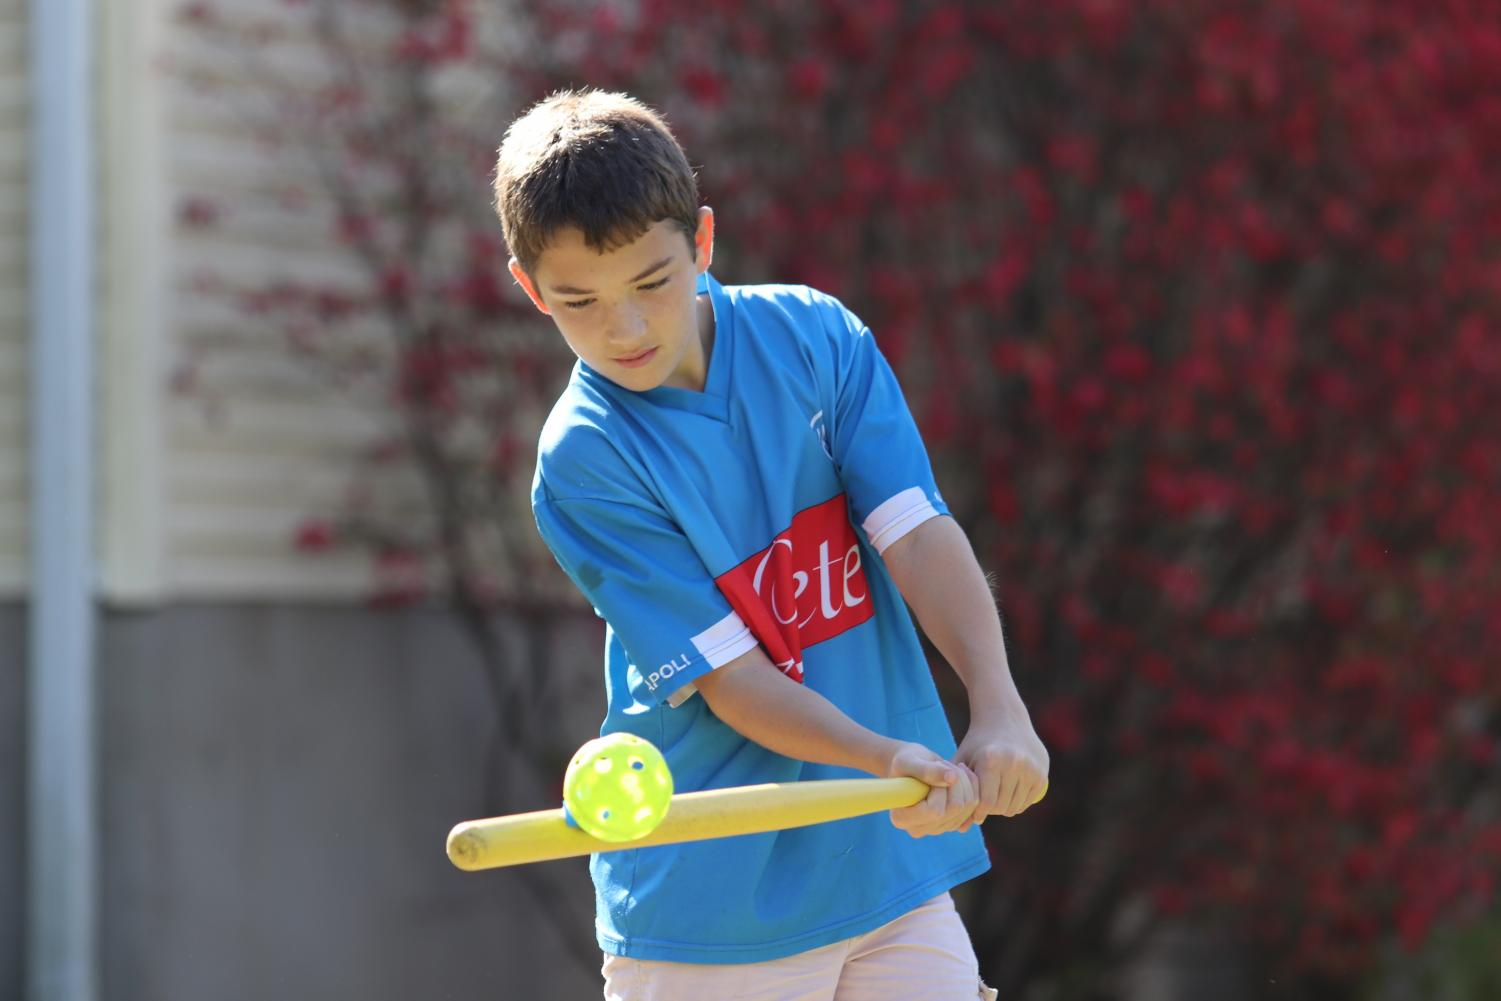 Rocco Zollo '21 is a member of the WIFFLE Ball team the